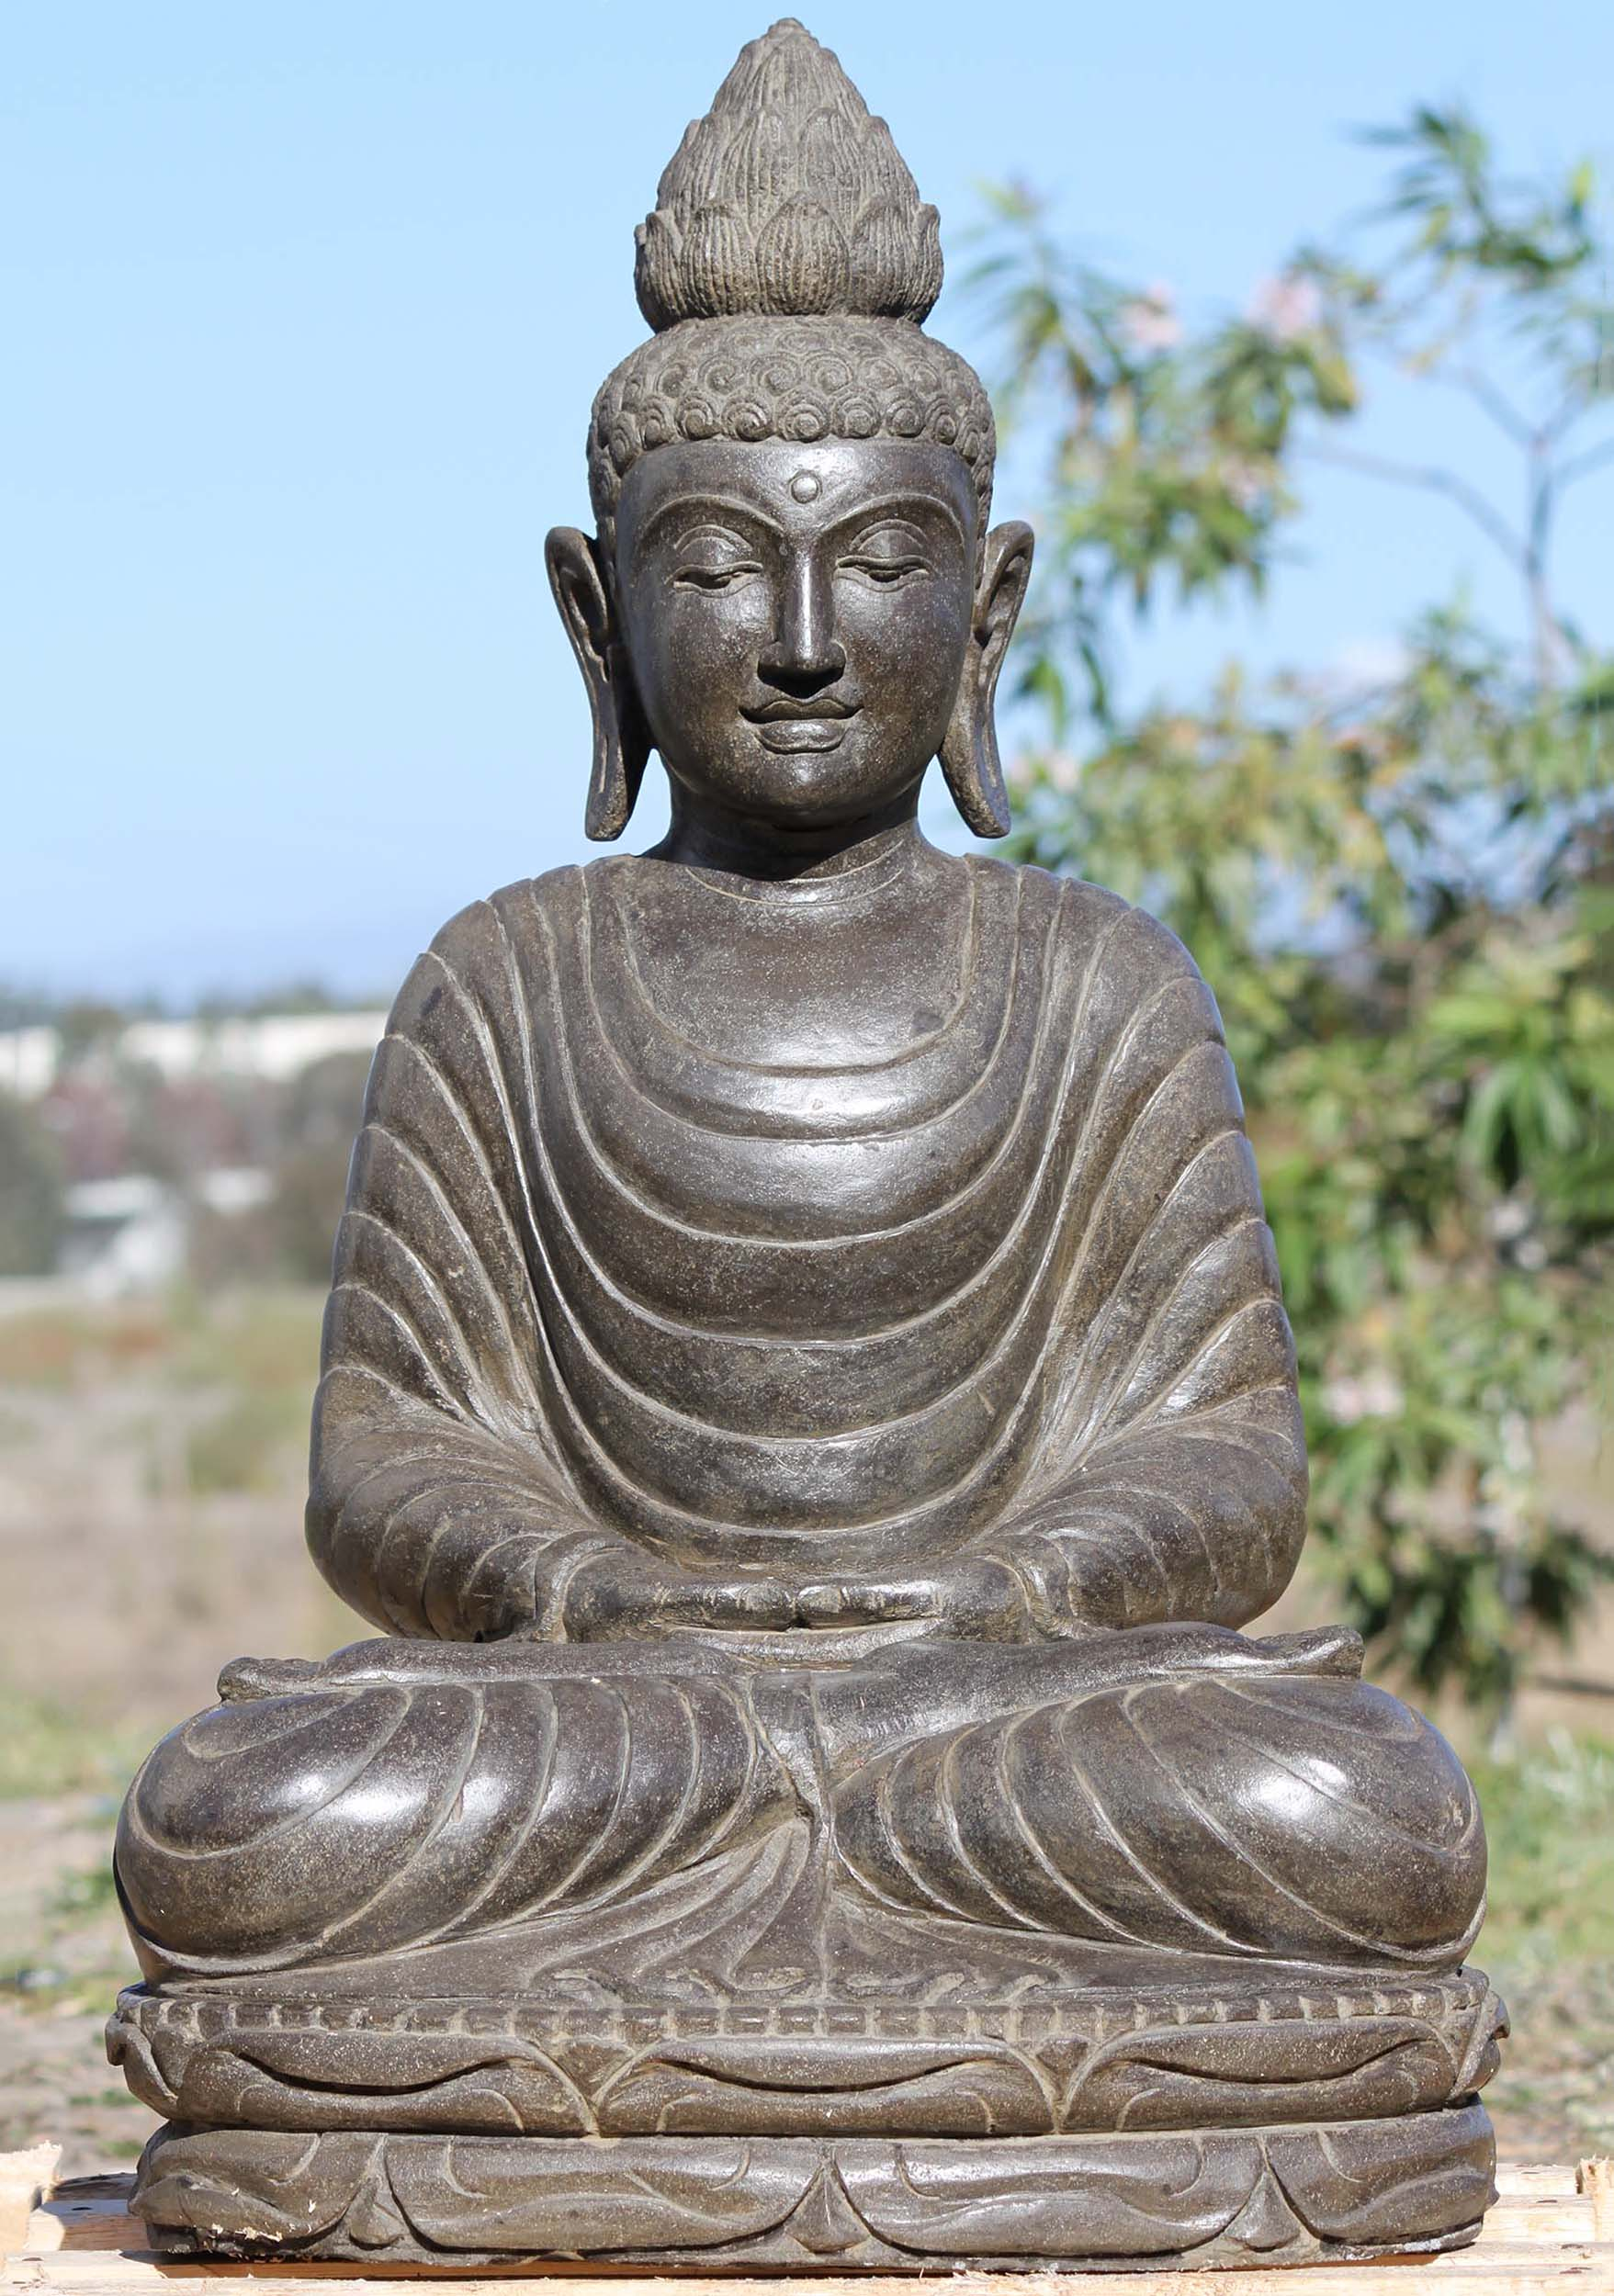 stone meditating buddha garden statue 31 111ls546. Black Bedroom Furniture Sets. Home Design Ideas